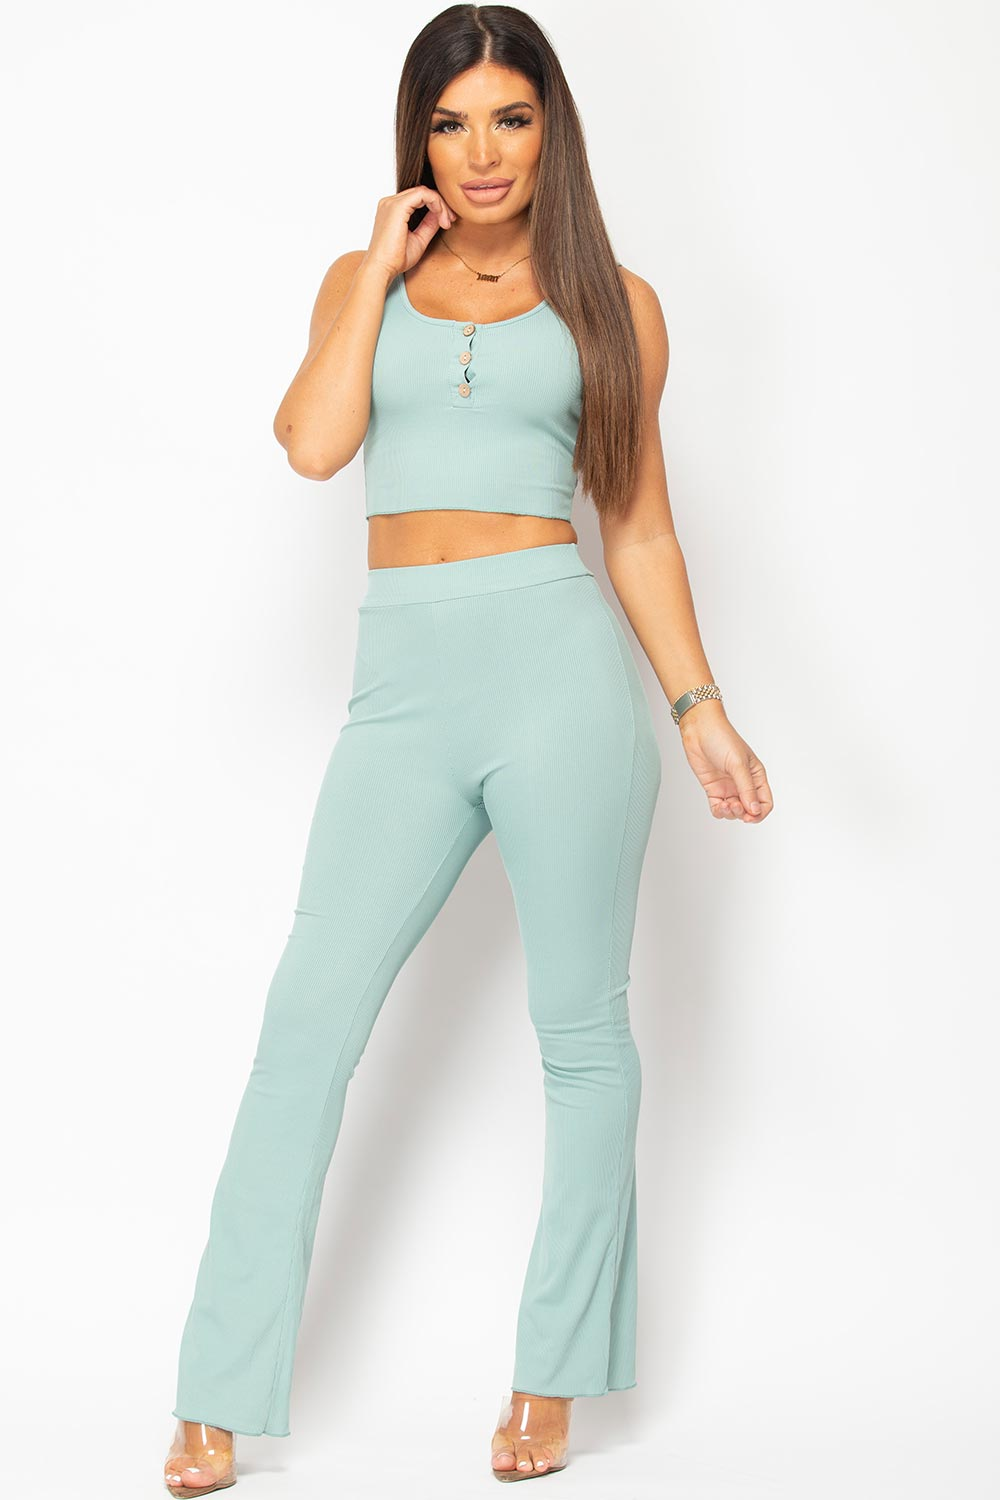 sage green crop top and trousers set